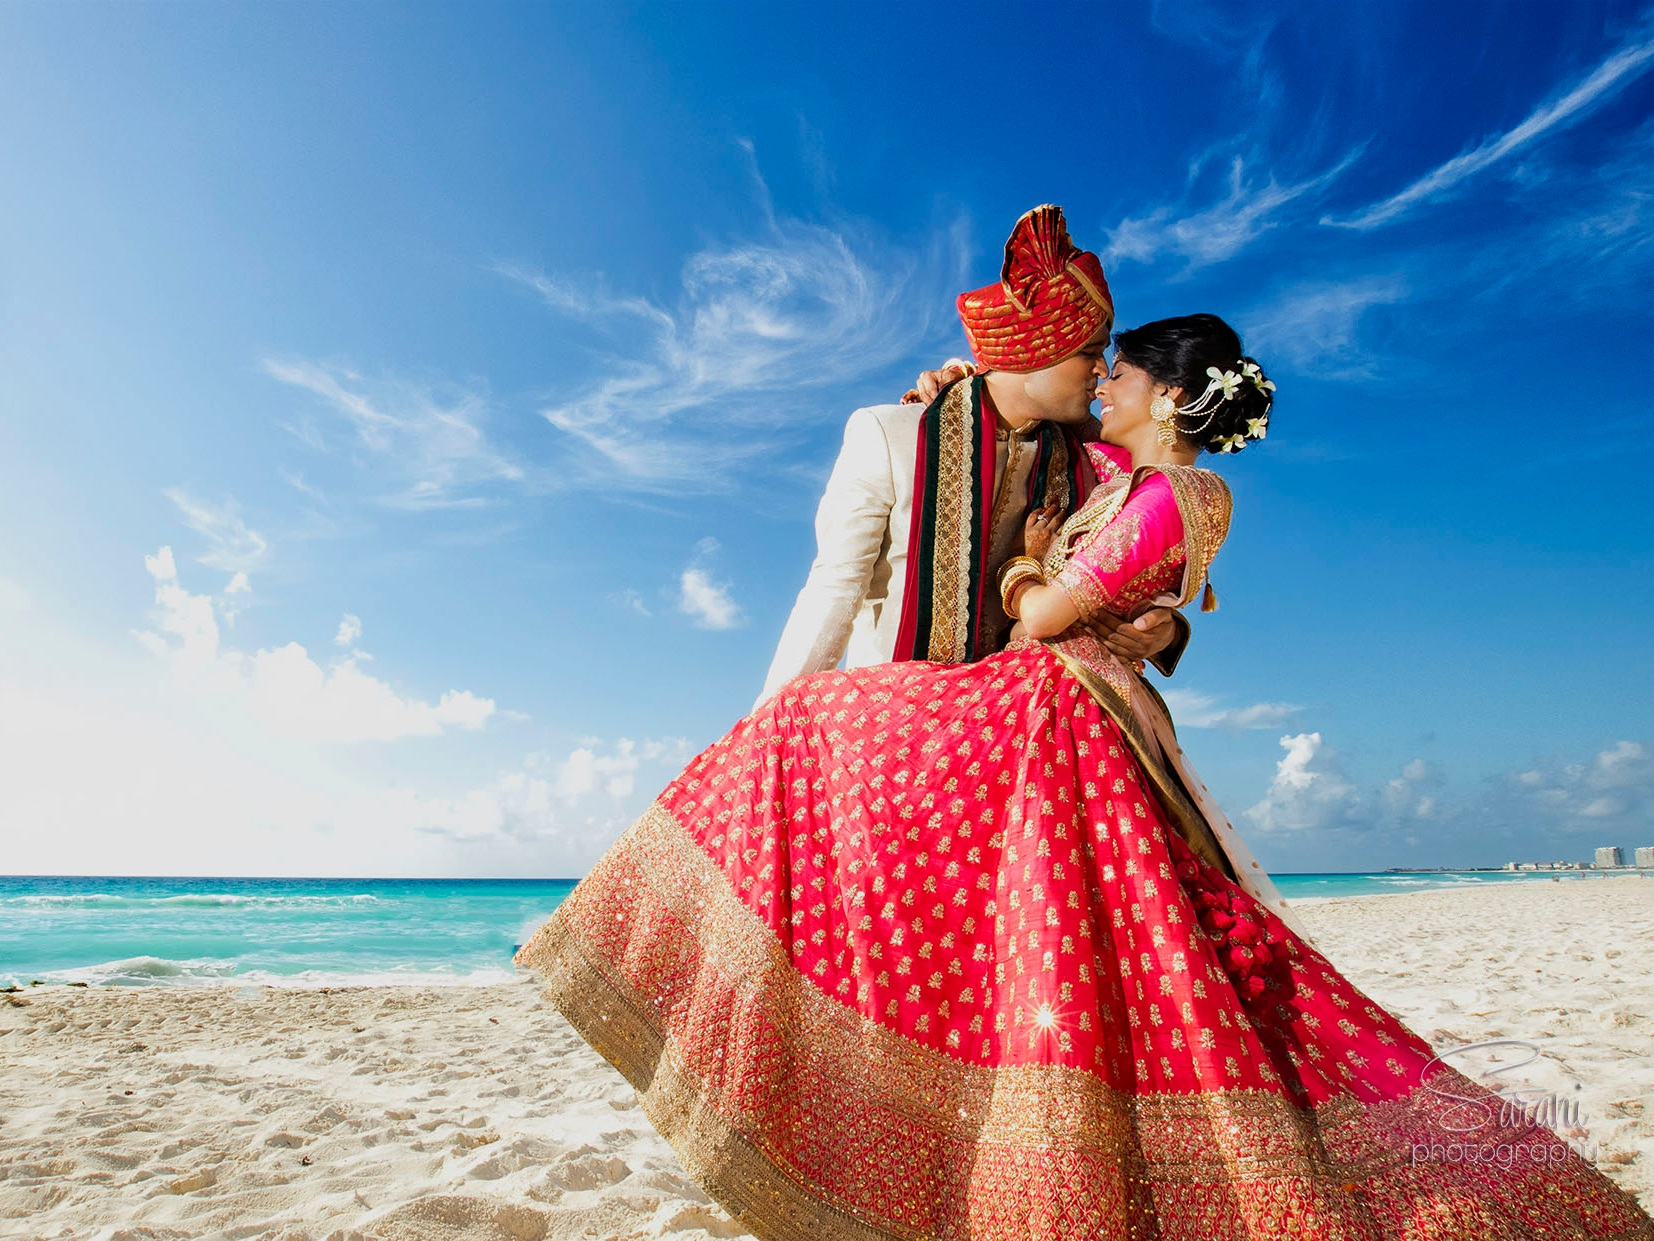 mexico-weddings-krishna-mihir-03.jpg